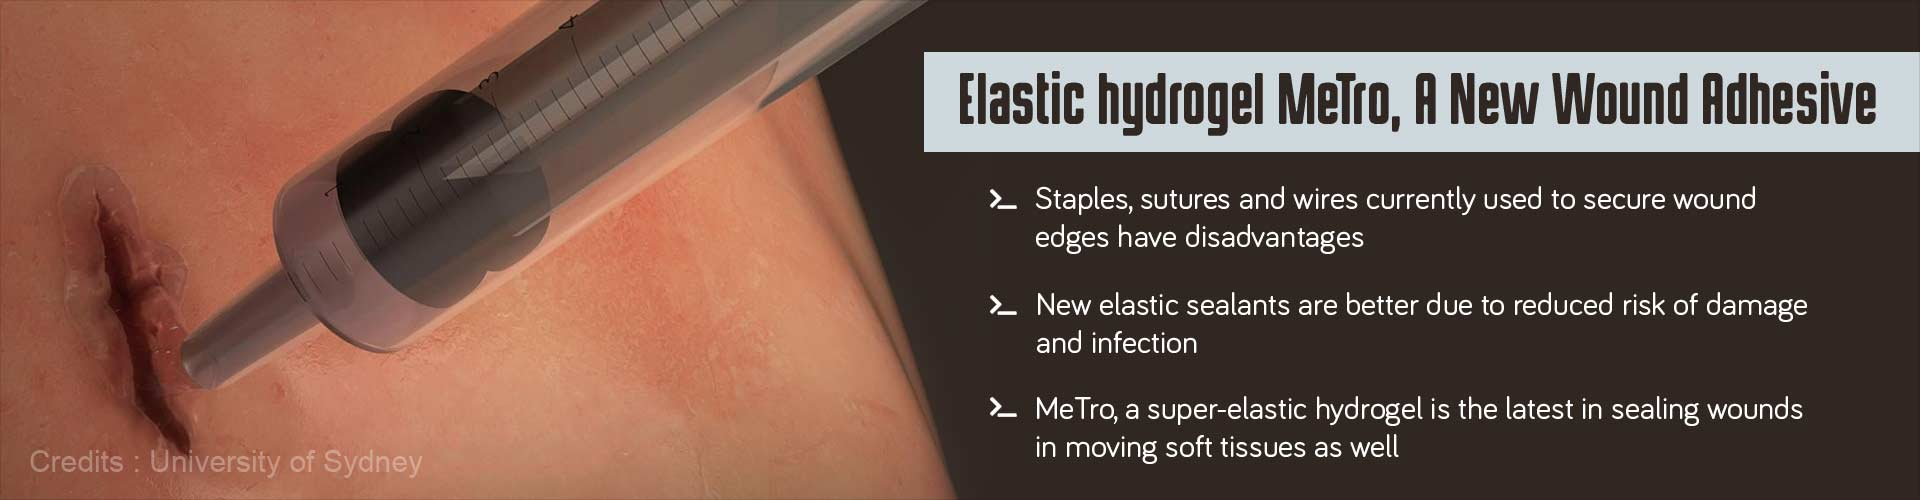 Highly Elastic Hydrogel Seals Wounds Well, Even in Moving Soft Tissues